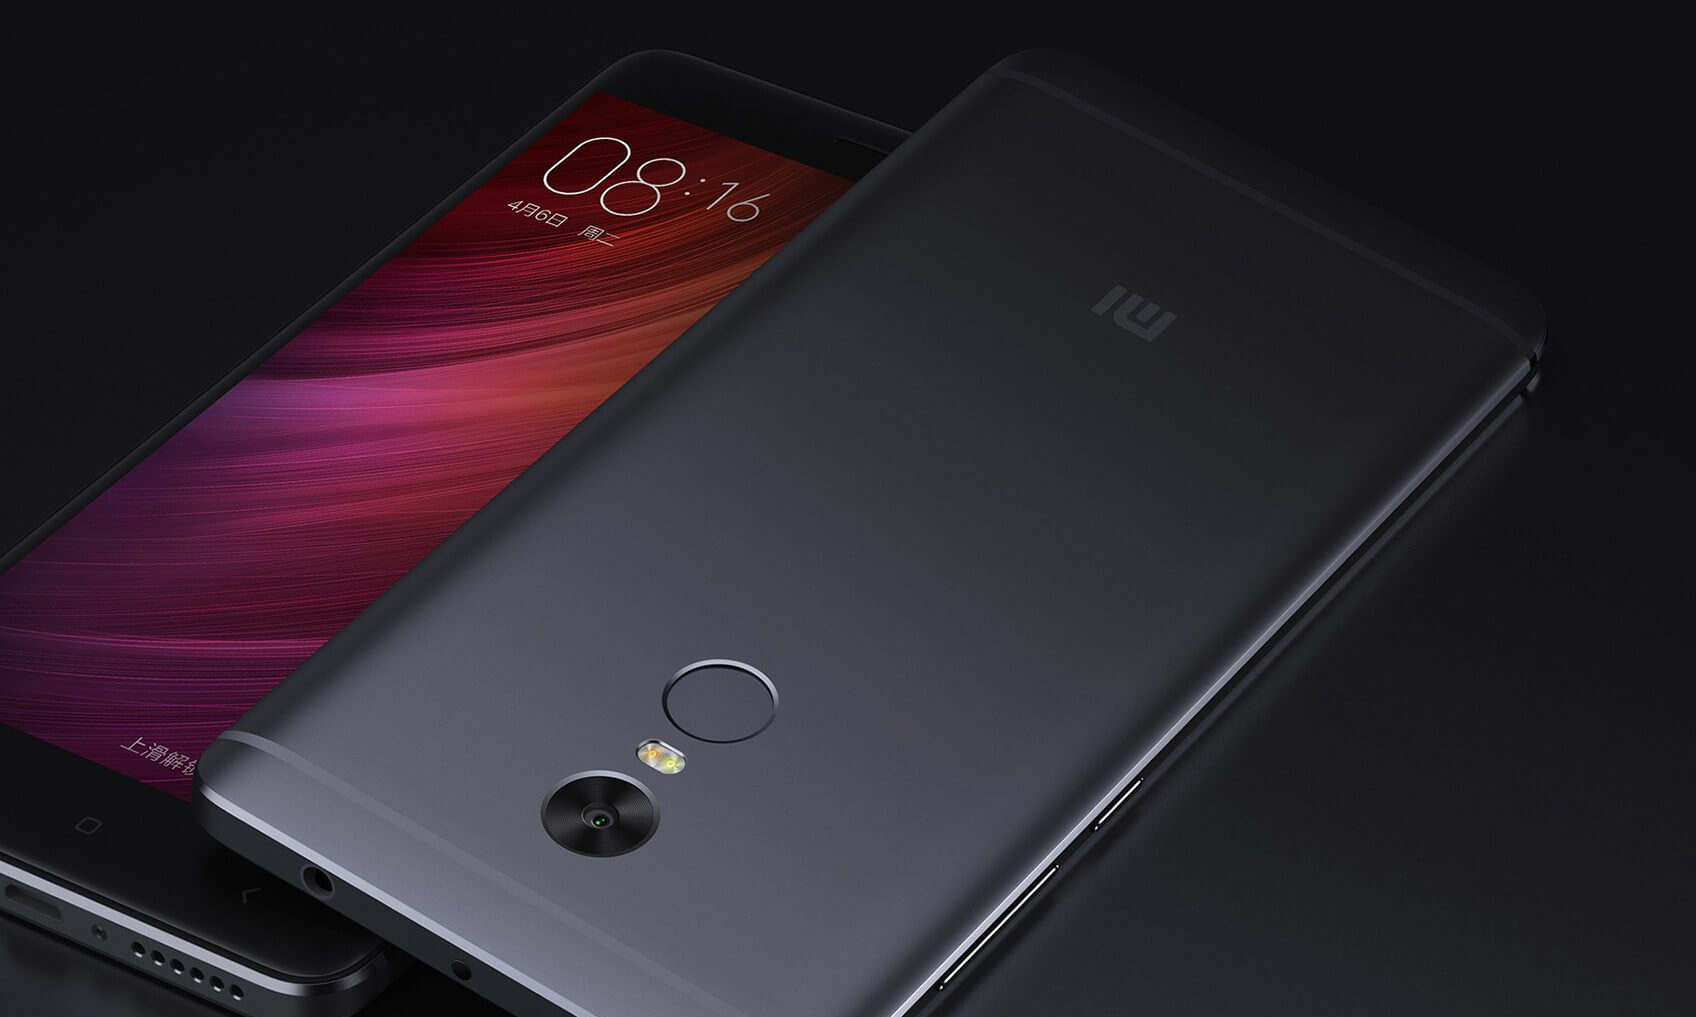 Xiaomi Redmi Note 4 mobile: Full Specifications, features & price in India